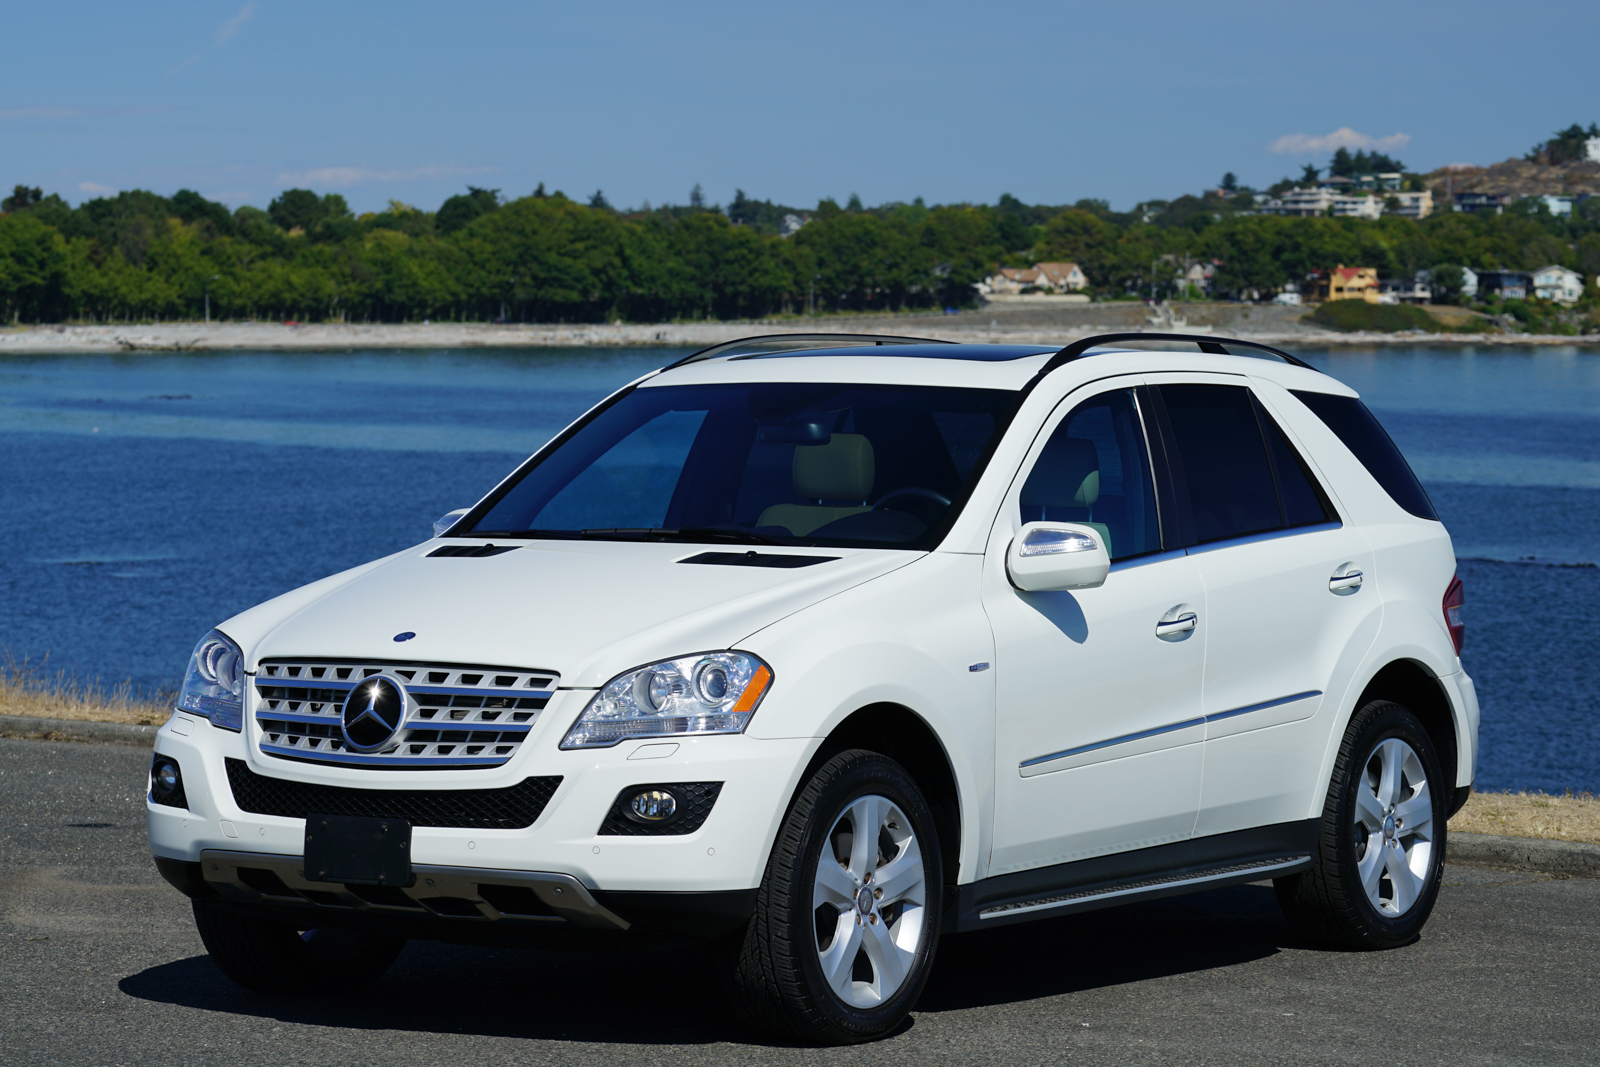 Silver arrow cars ltd premium auto dealership broker for Mercedes benz ml350 4matic 2010